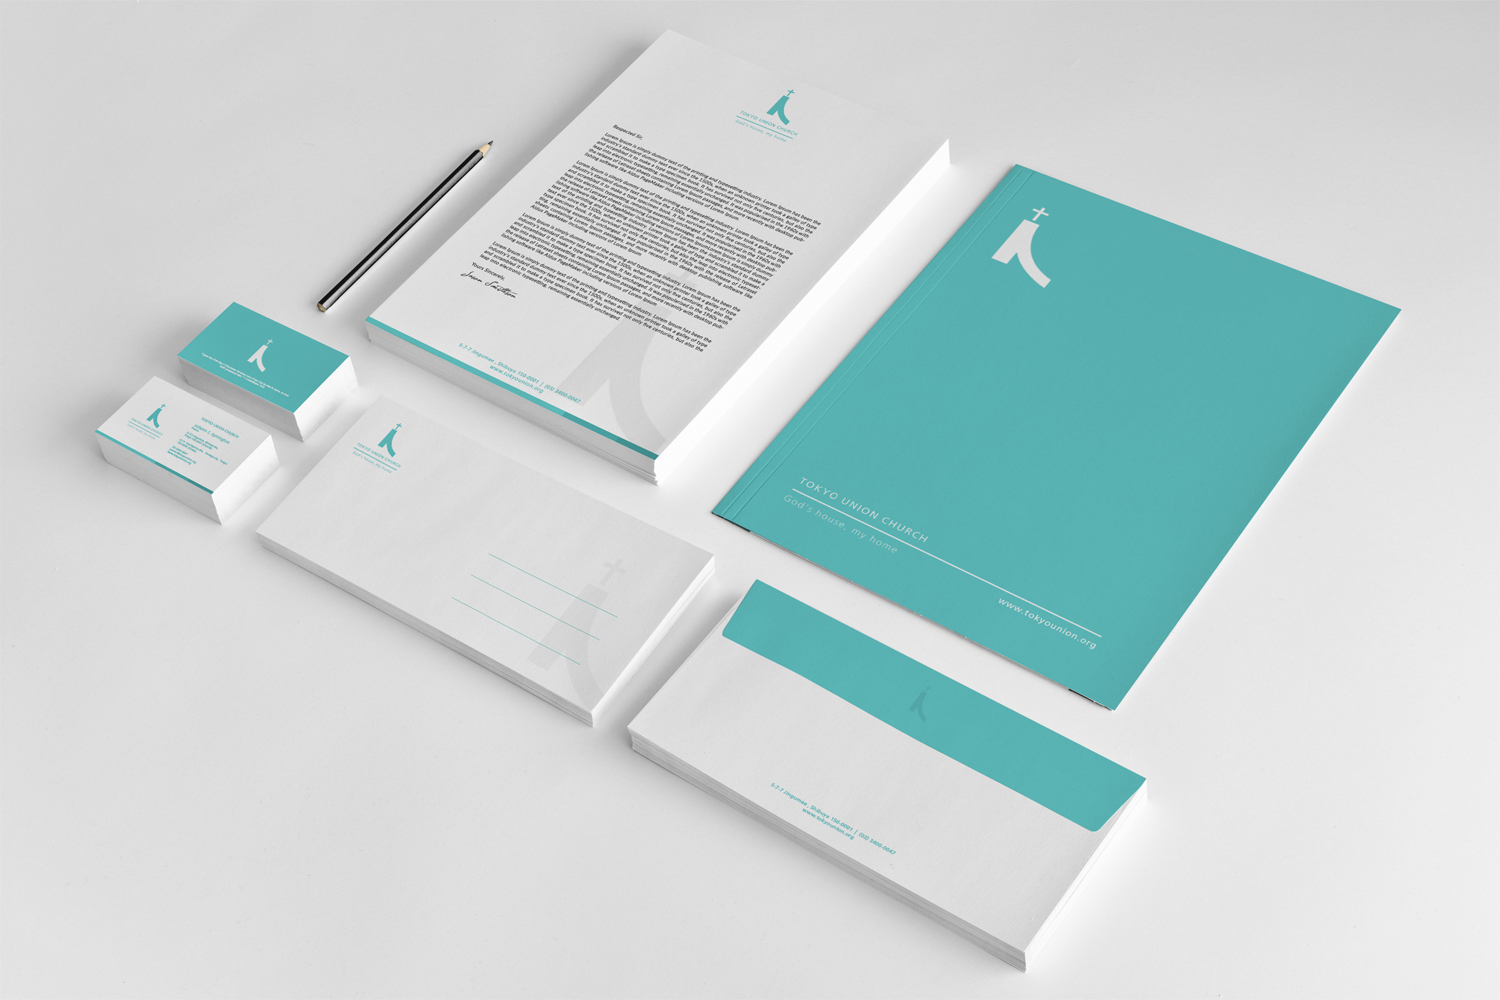 Turquoise Minimal Stationary Design